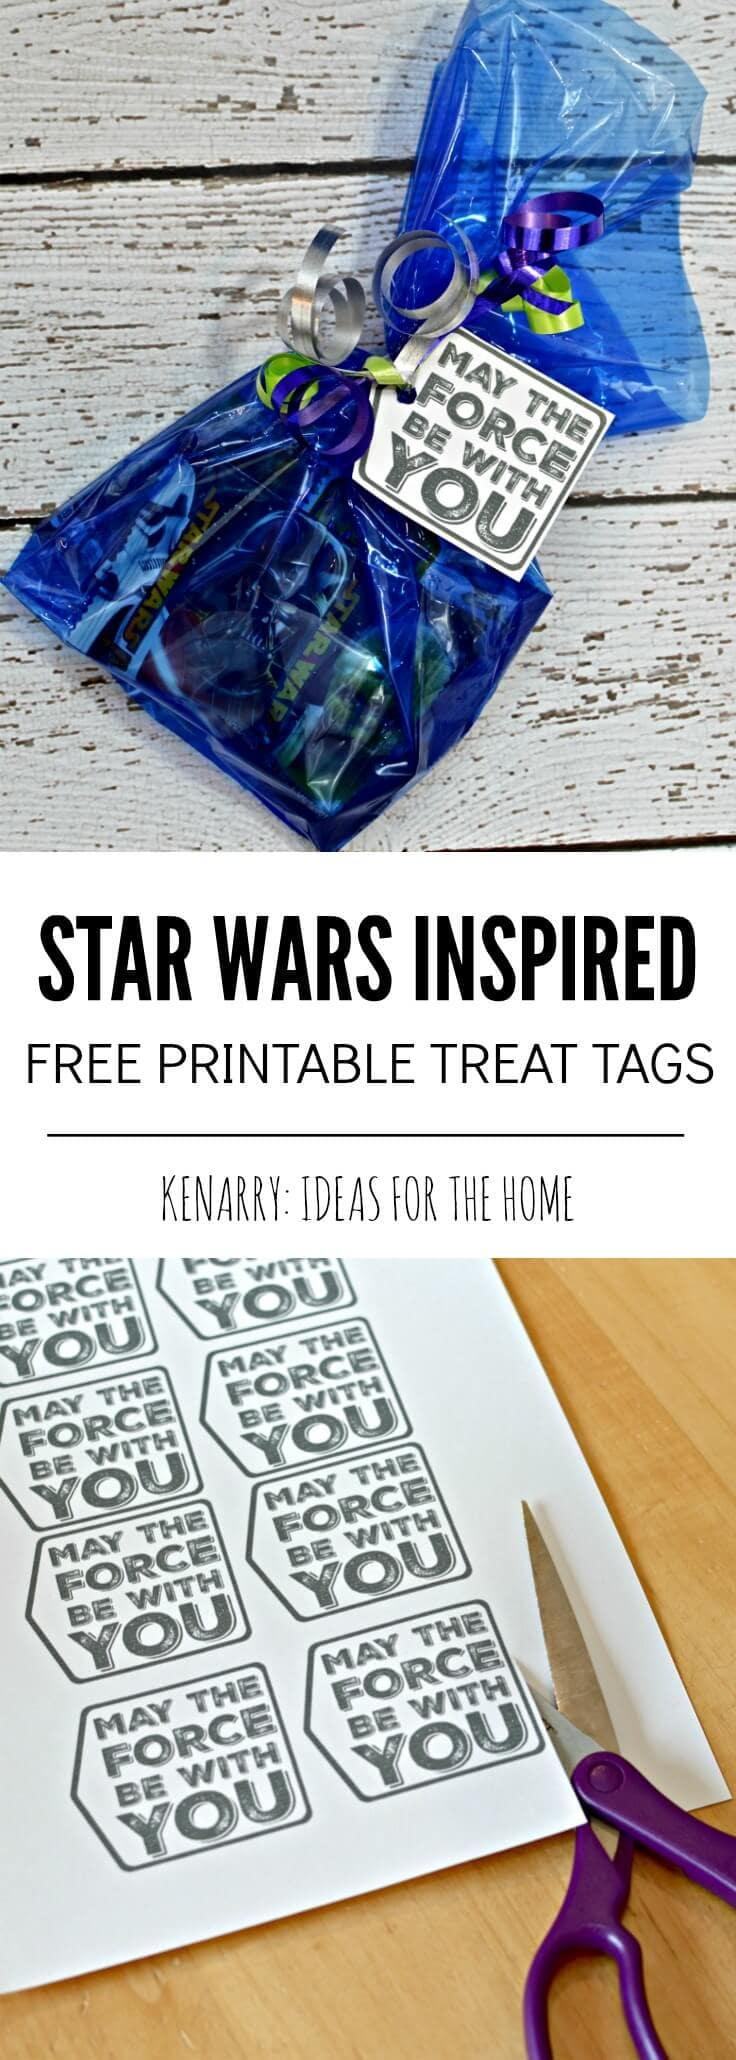 A Cute Star Wars Birthday Party Gift Bag With Tag That Reads May The Force